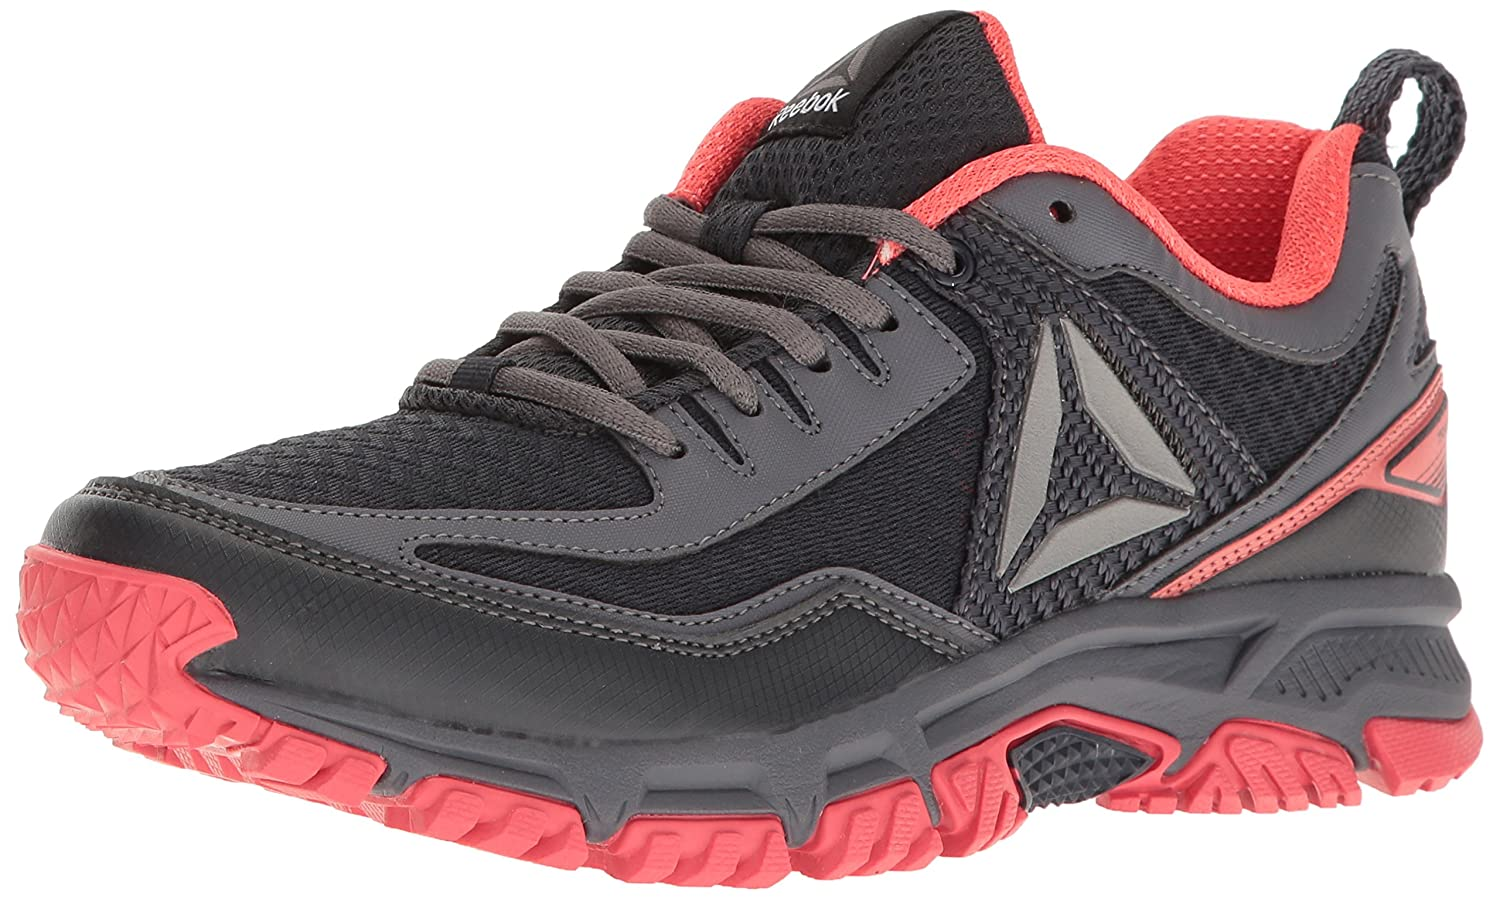 Reebok Women's Ridgerider 2.0 Trail Runner B01I0C6S3W 6 B(M) US|Lead/Fire Coral/Ash Grey/Pewter